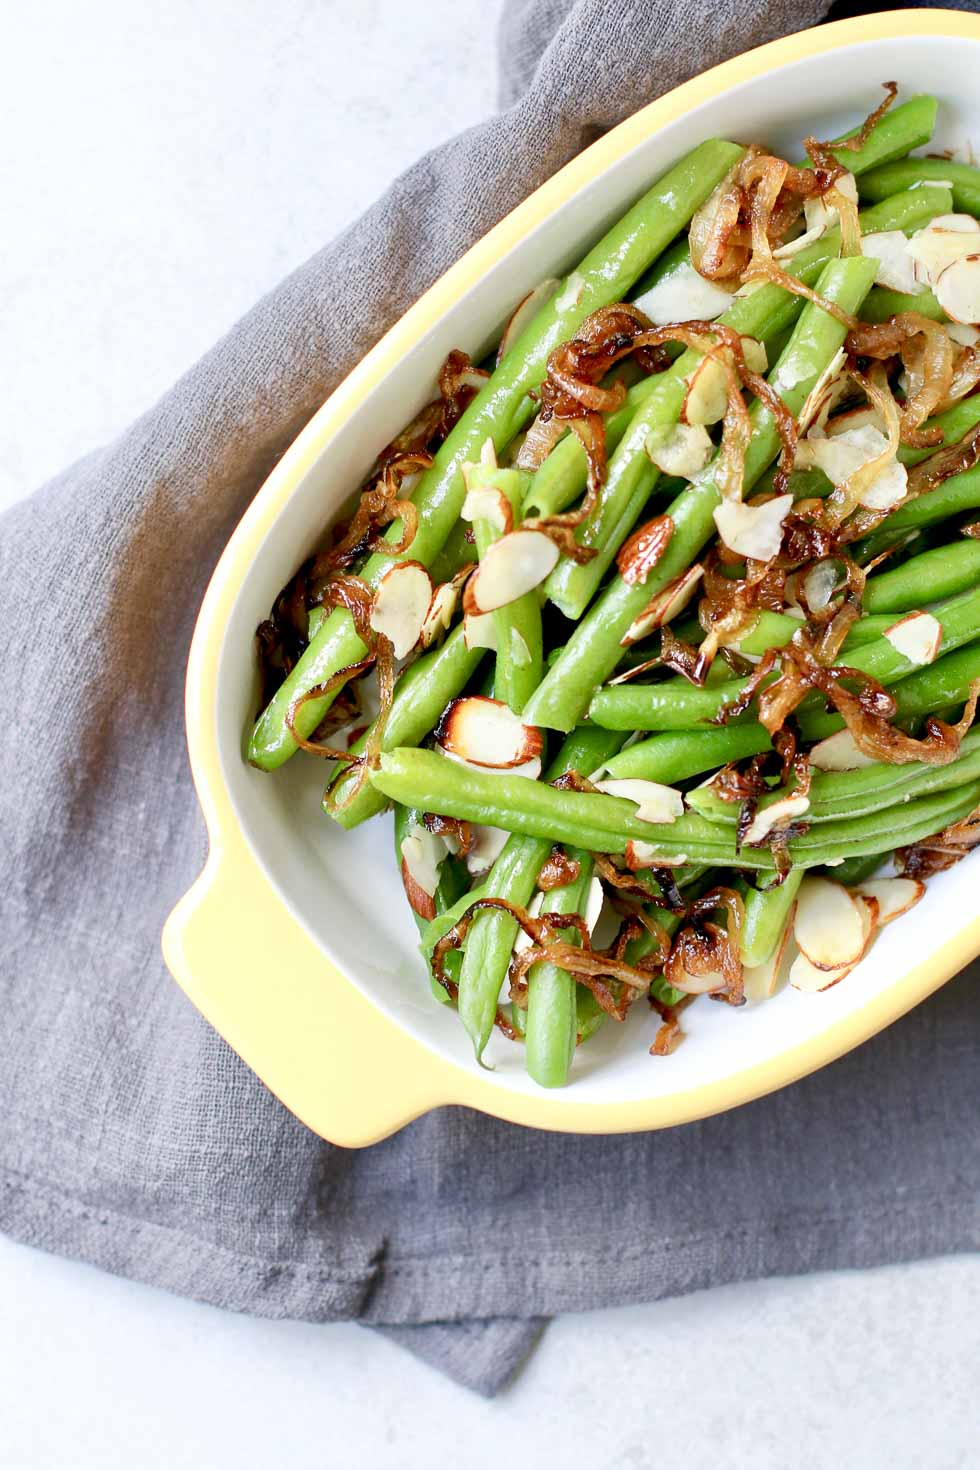 Green Beans With Caramelized Onions And Almonds Marisa Moore